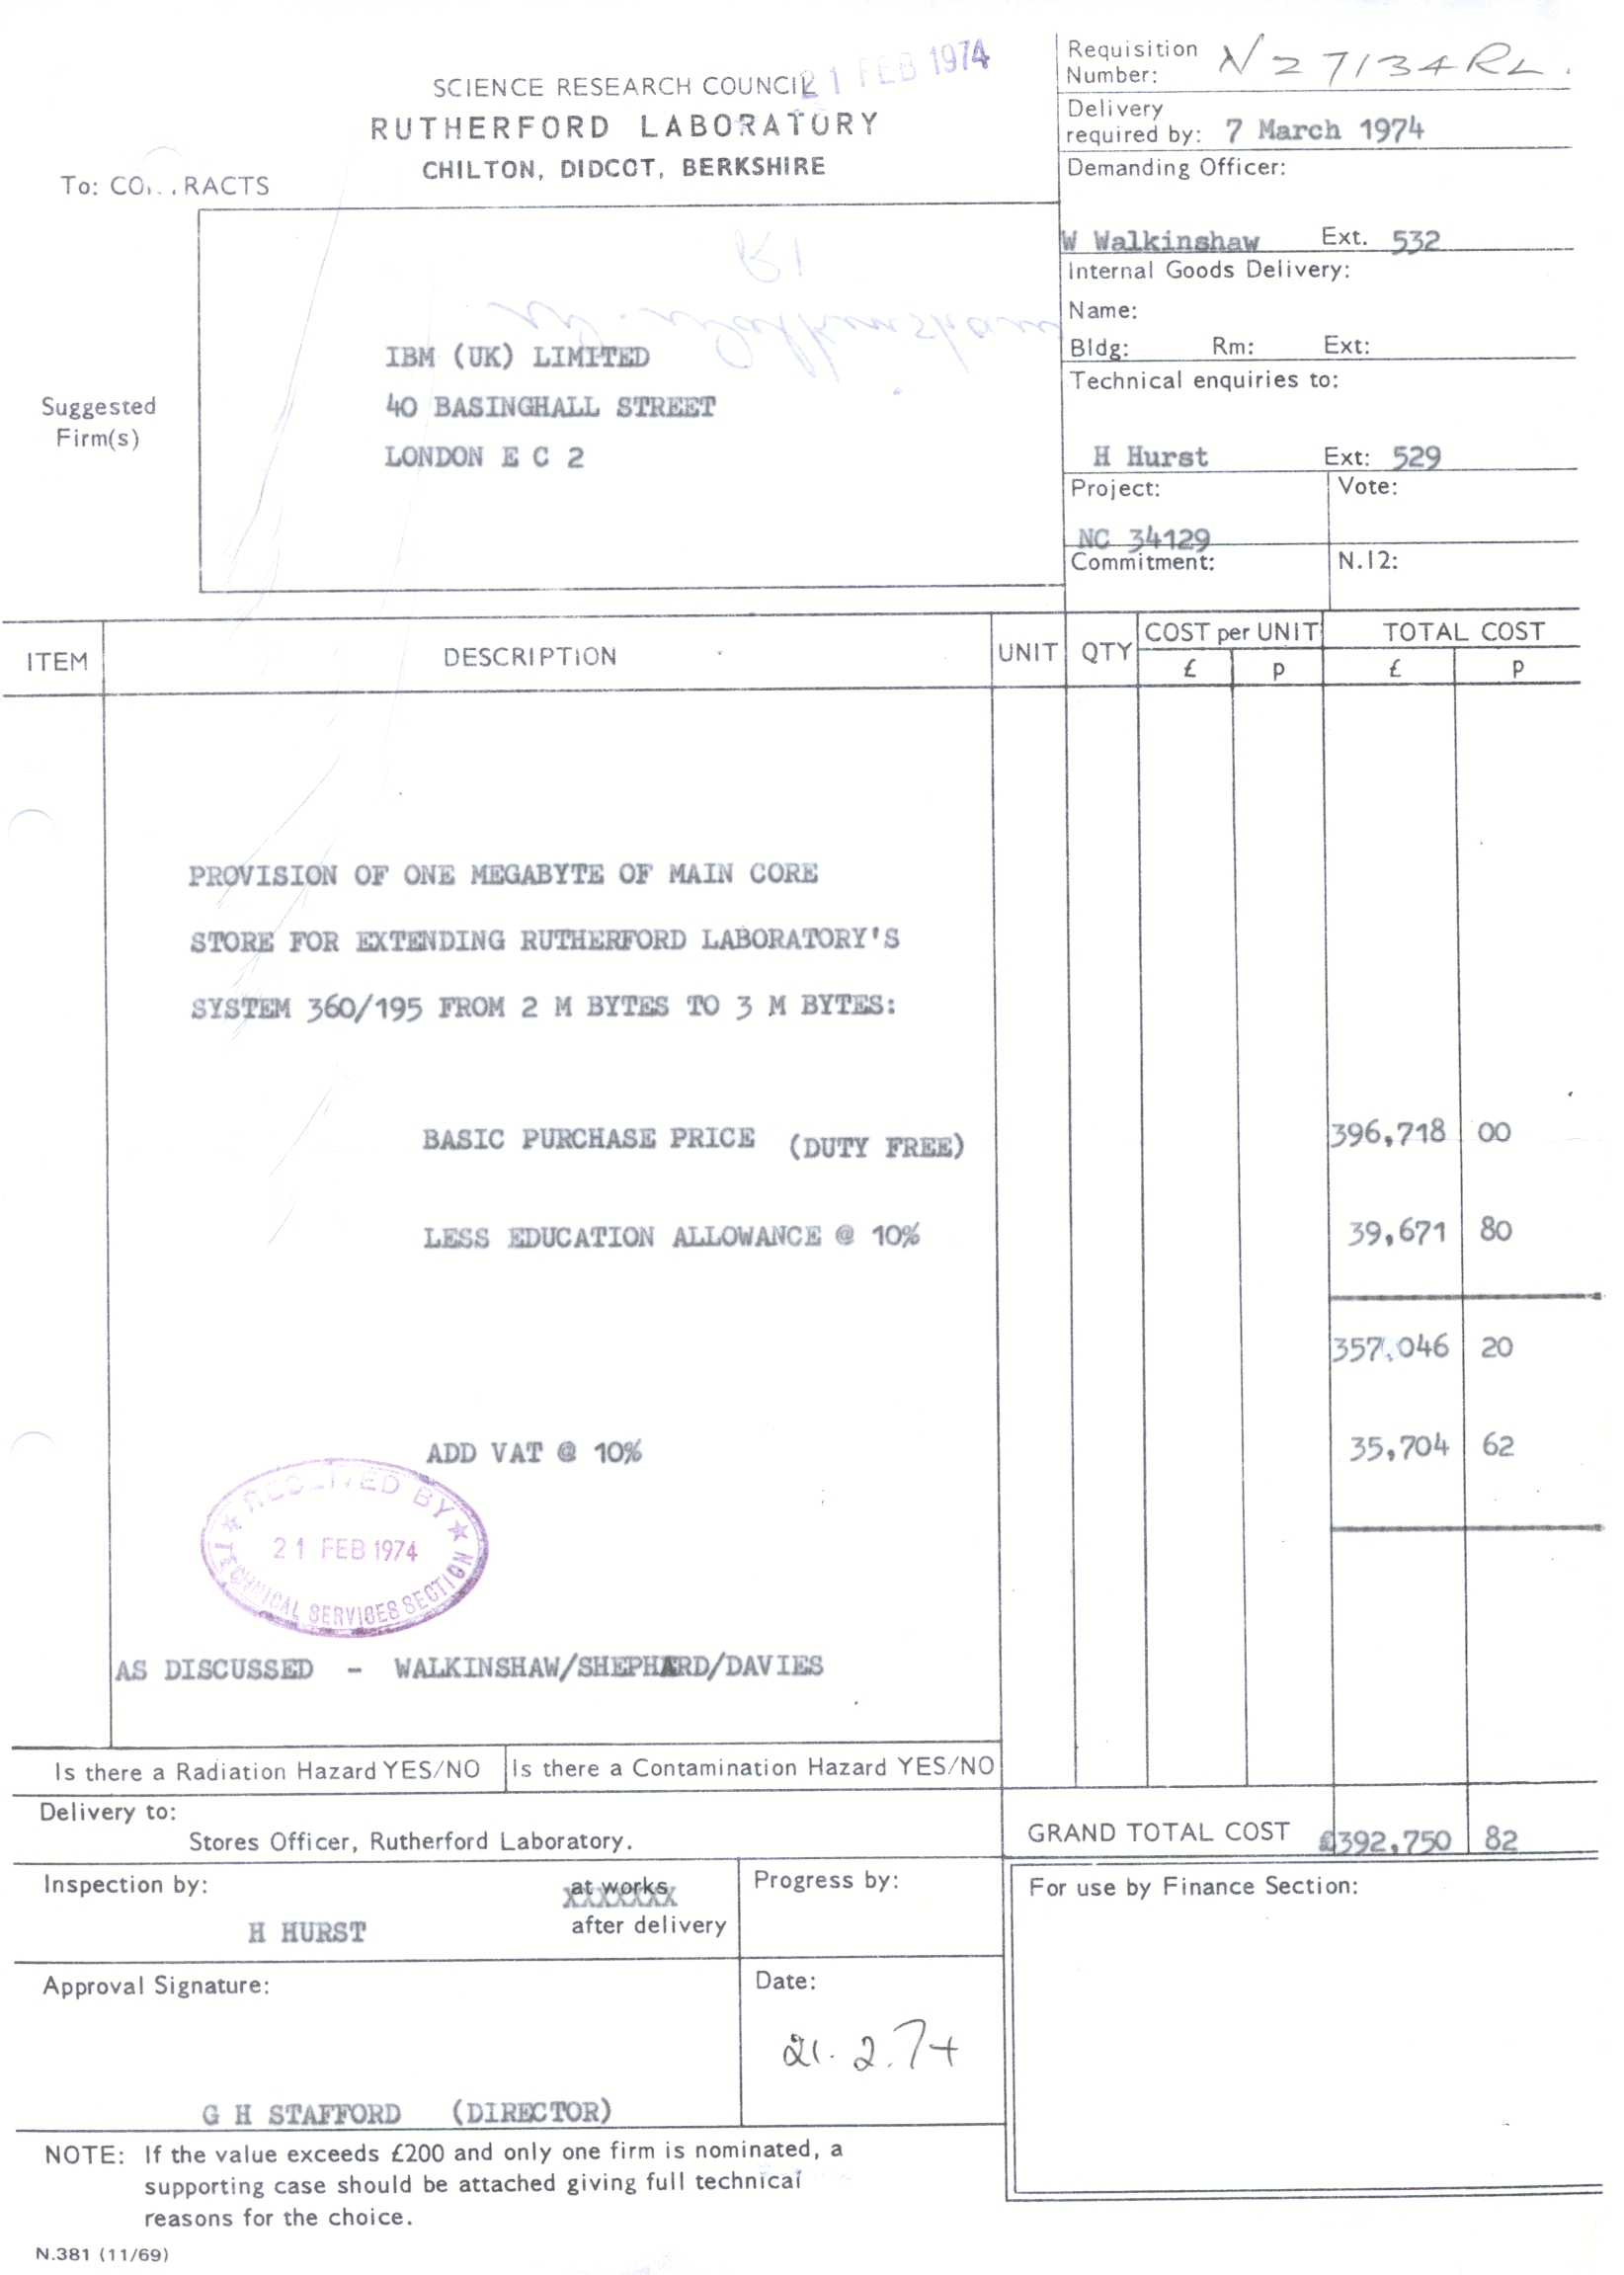 Invoice For Rutherfordu0027s Third Megabyte Of Memory  Model Of Invoice